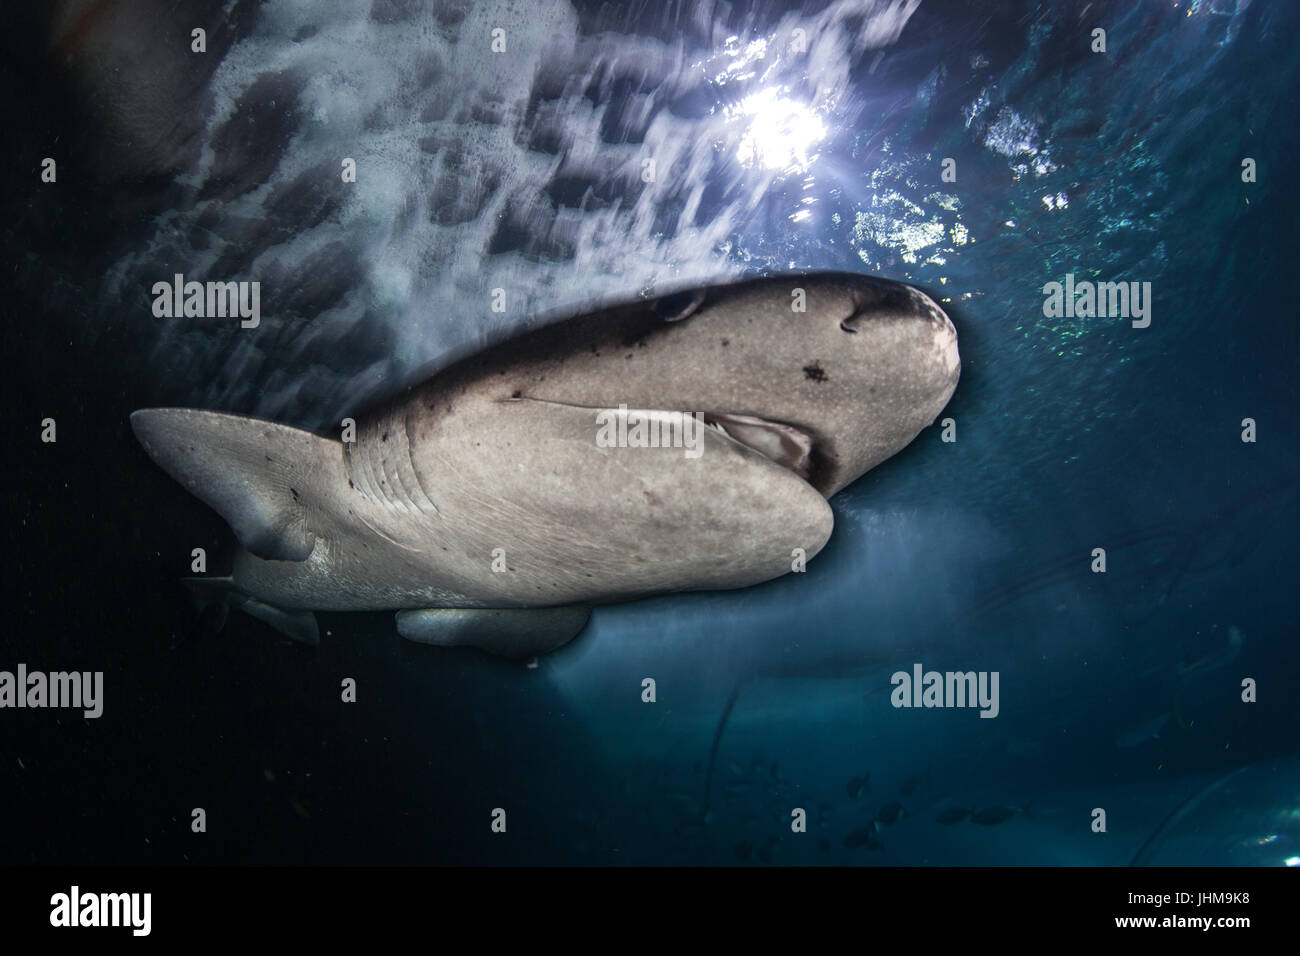 A Sevengill shark, Notorynchus cepedianus, swims in an aquarium where the public can view them up close. These relatively - Stock Image